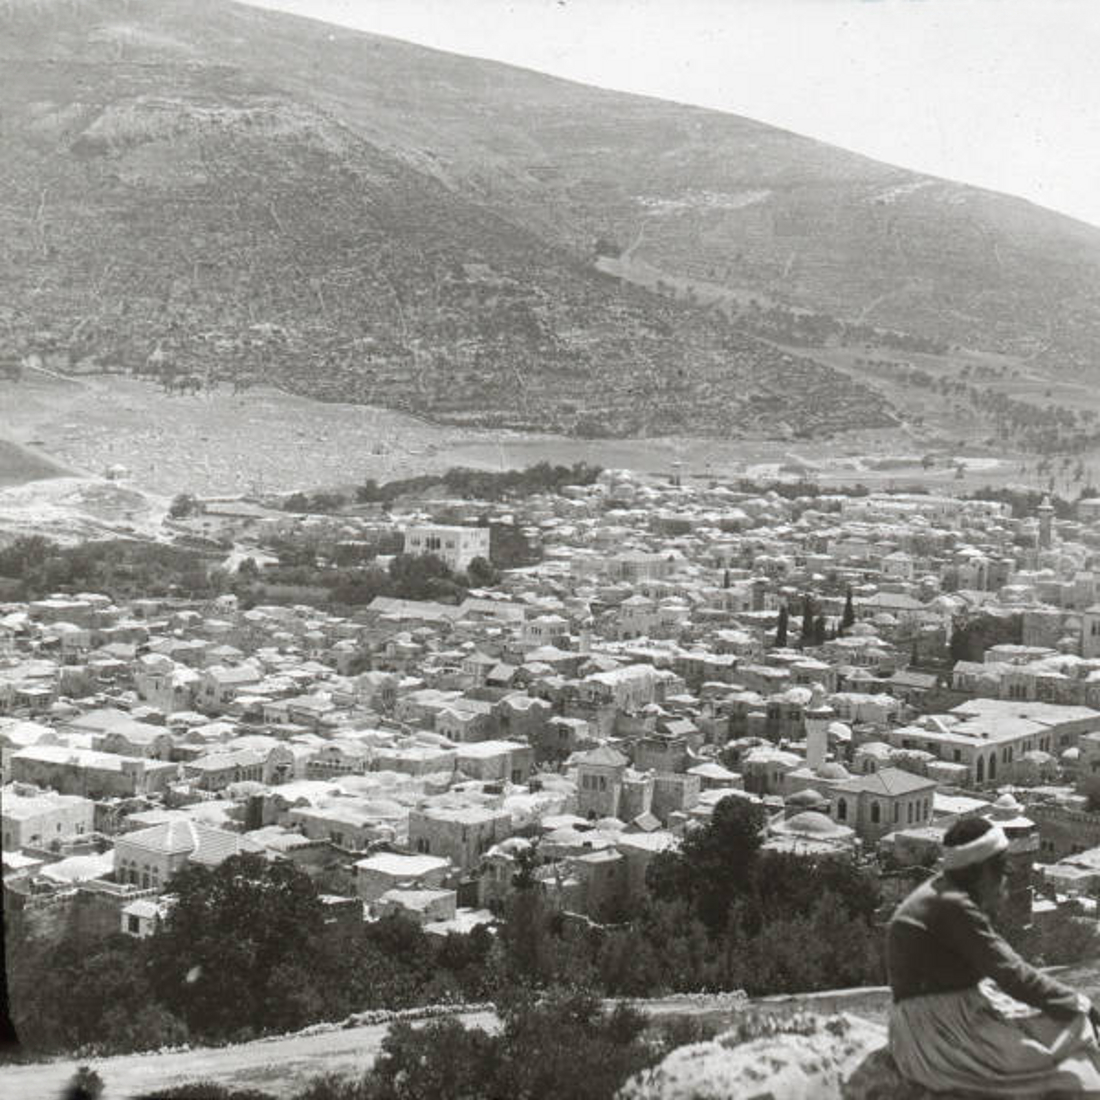 Nablus - نابلس : NABLUS - Late 19th, early 20th c. 34 - Nablus from Mt. Gerizim, 1900 - 1911